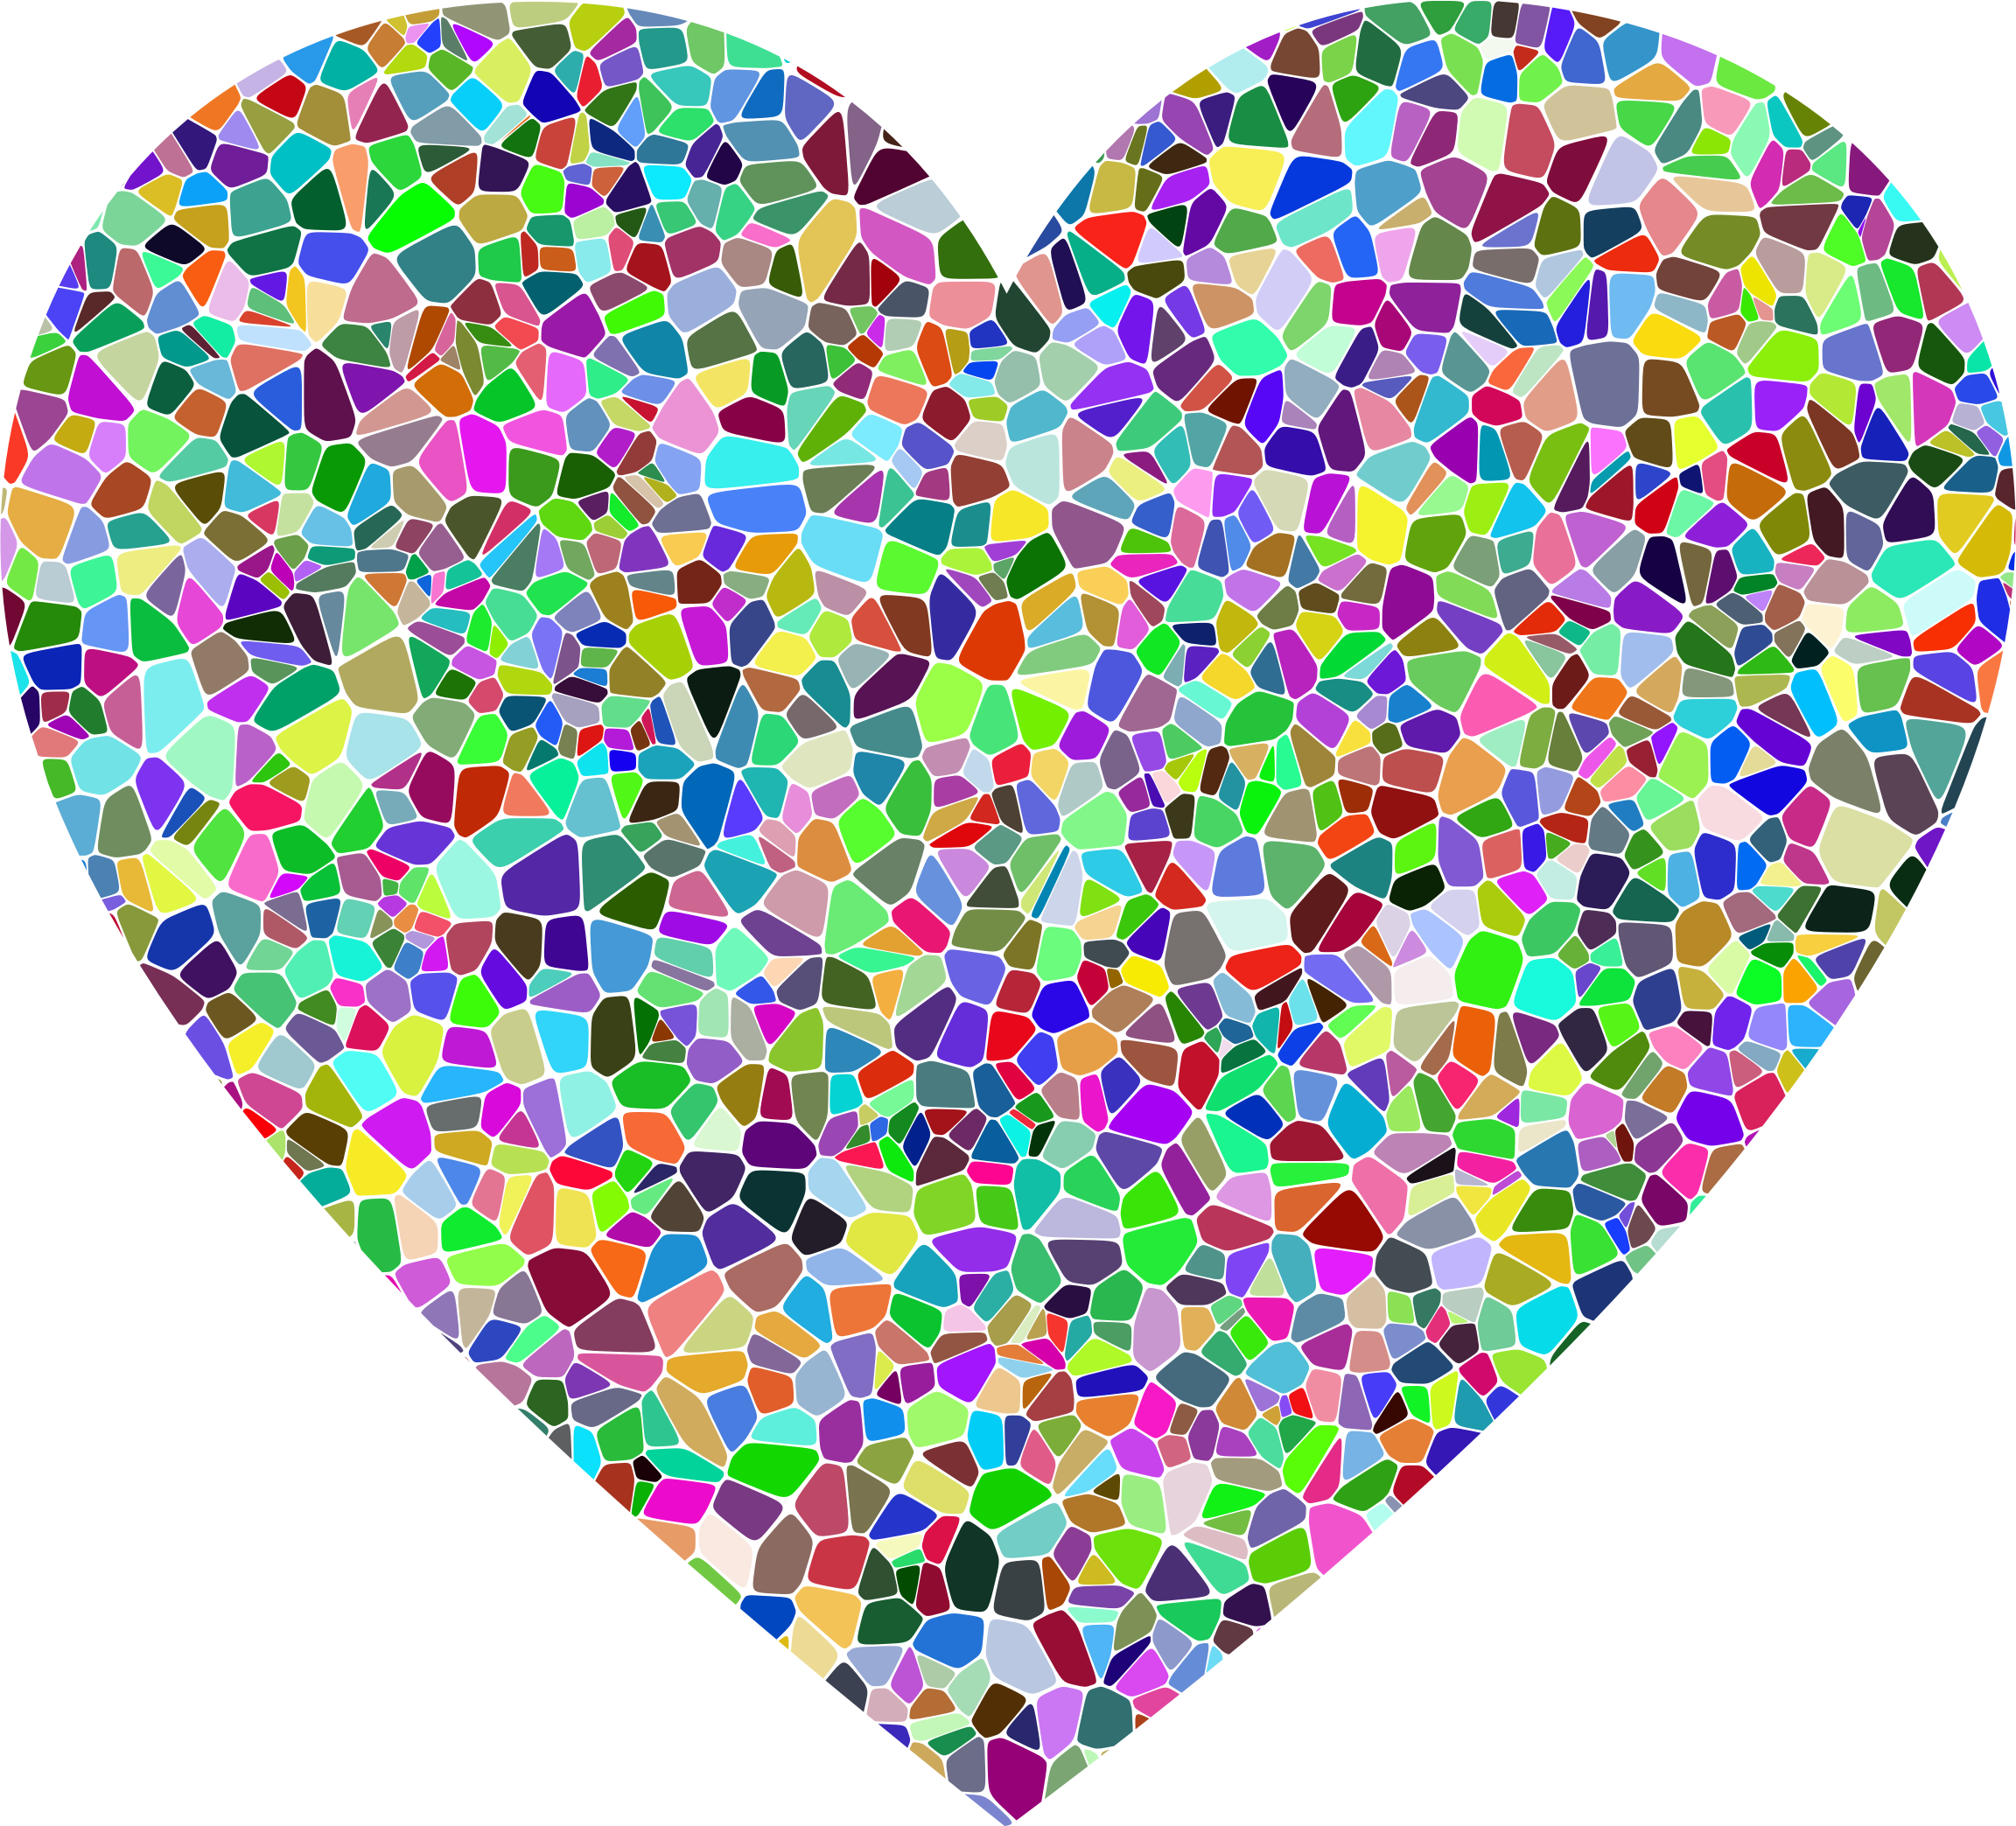 Prismatic Tiled Heart by GDJ